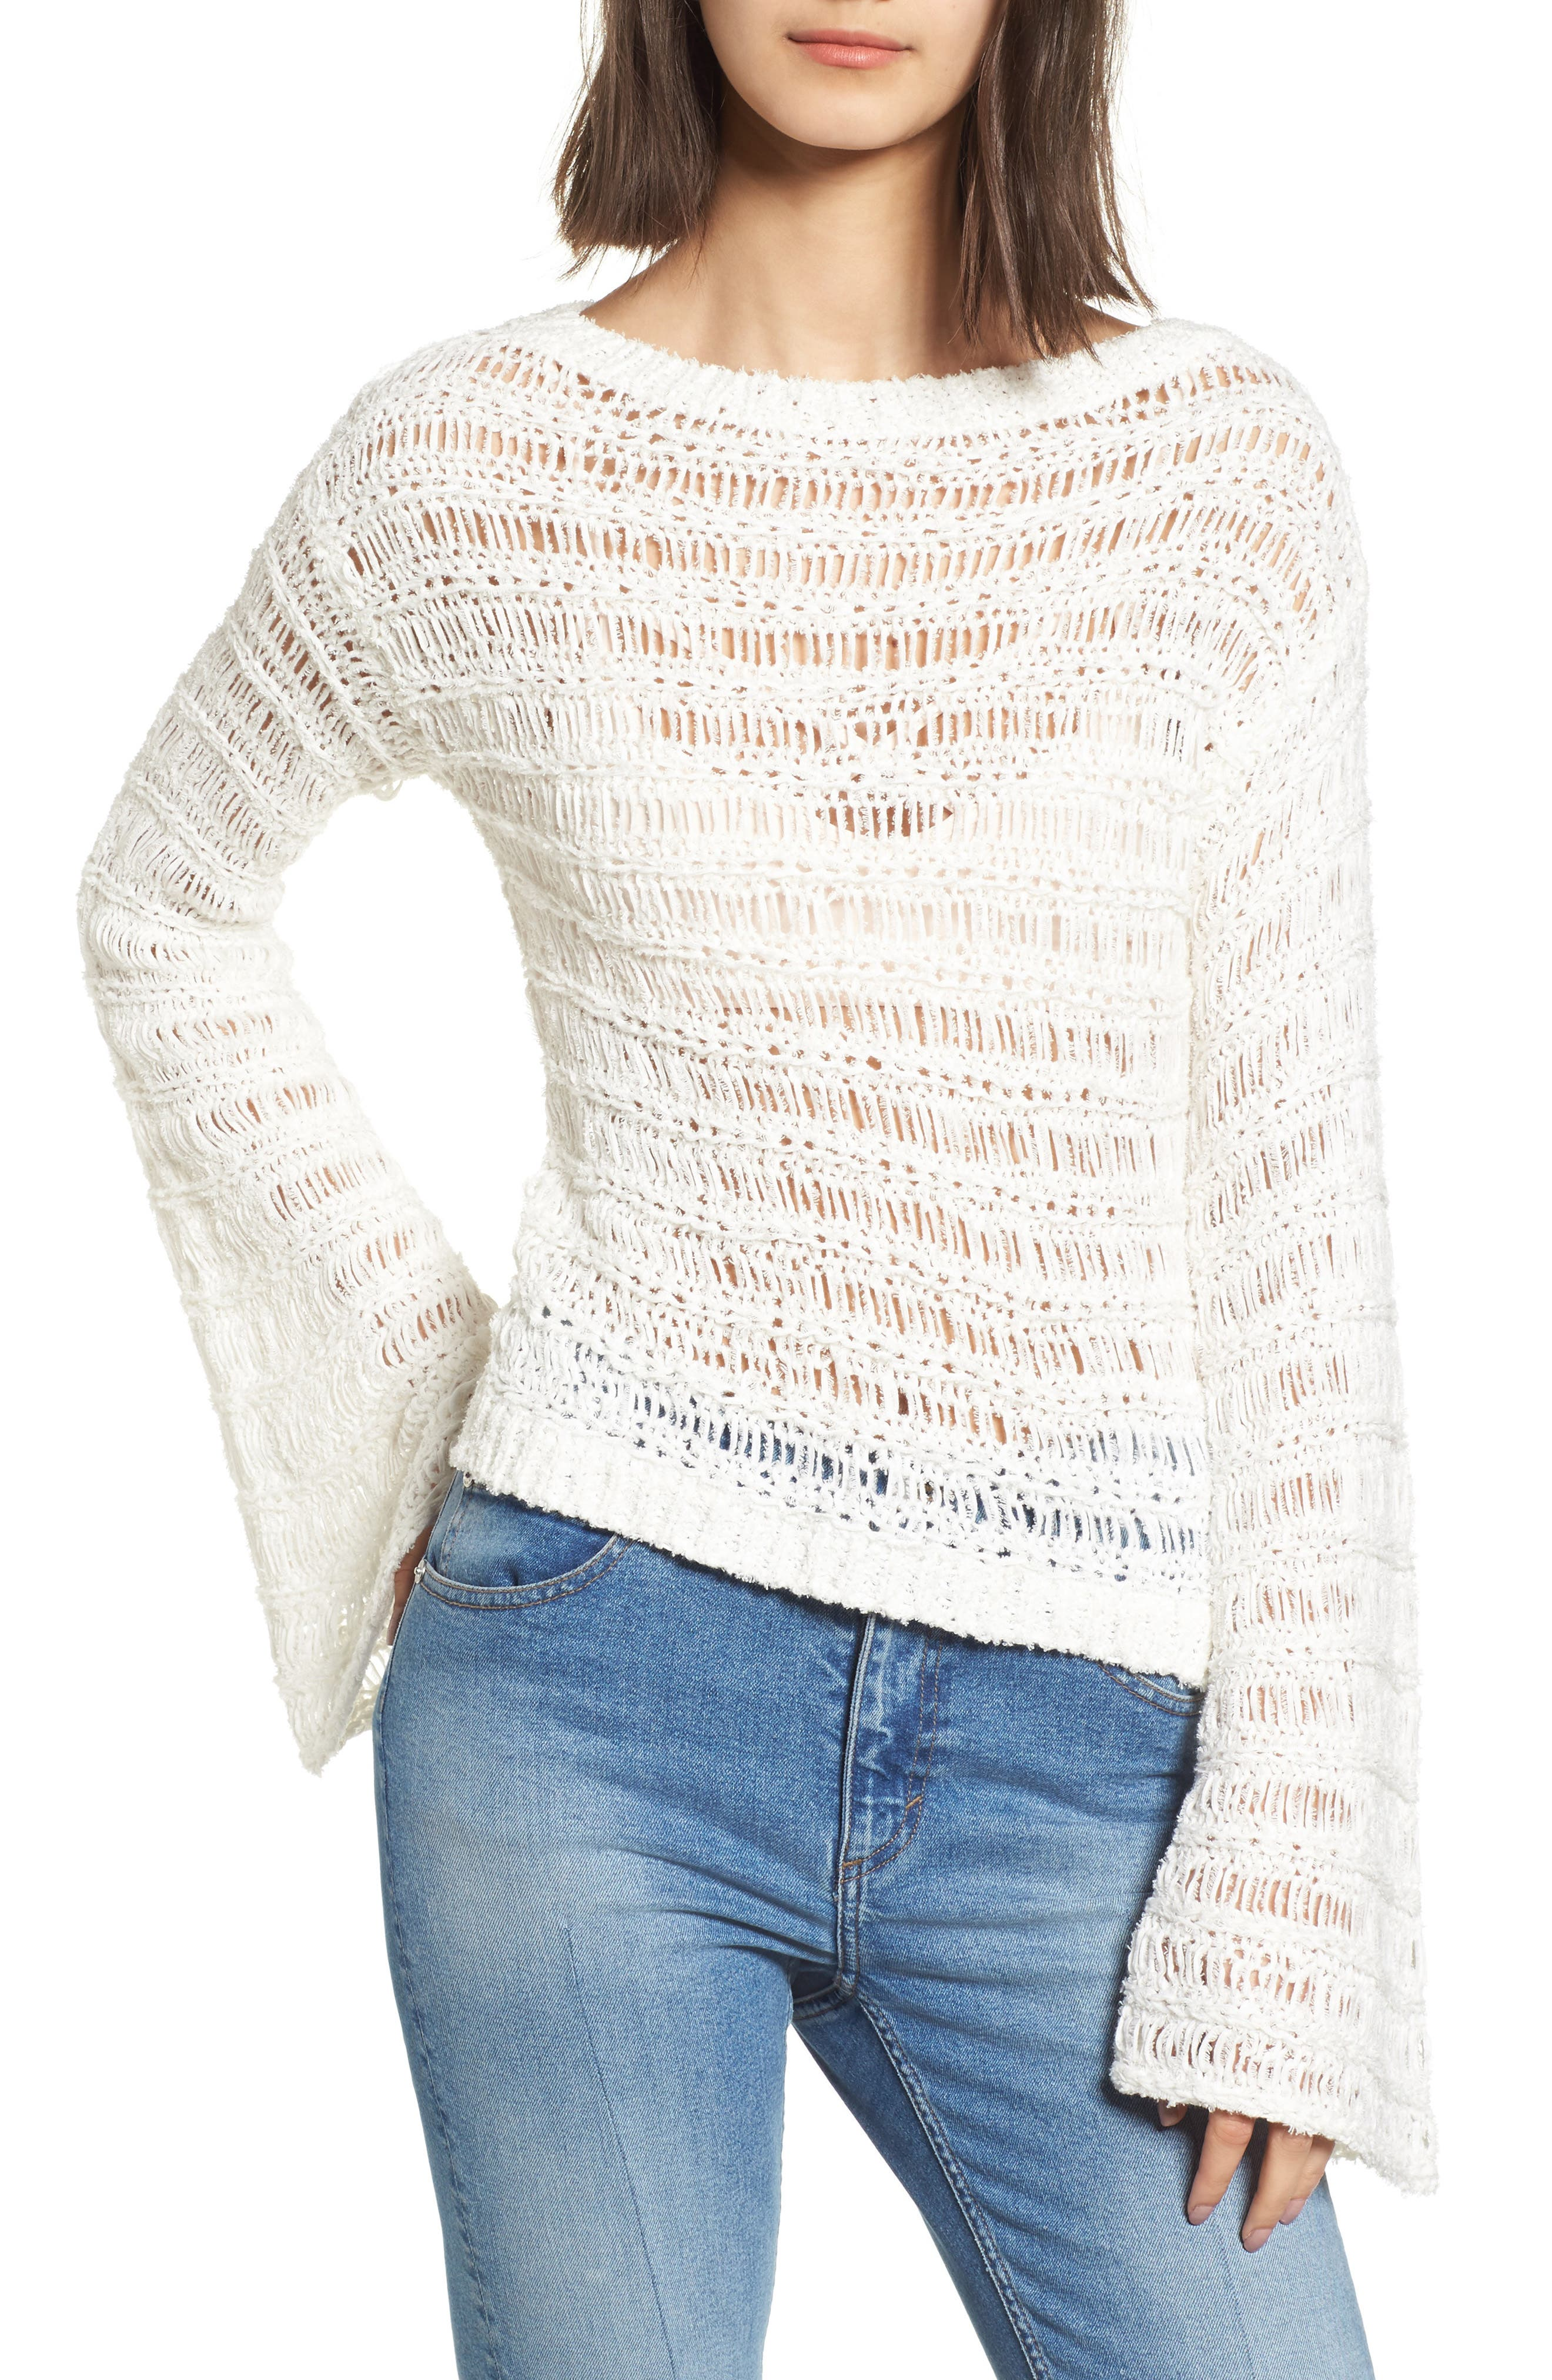 Ladder Stitch Sweater,                             Main thumbnail 1, color,                             900